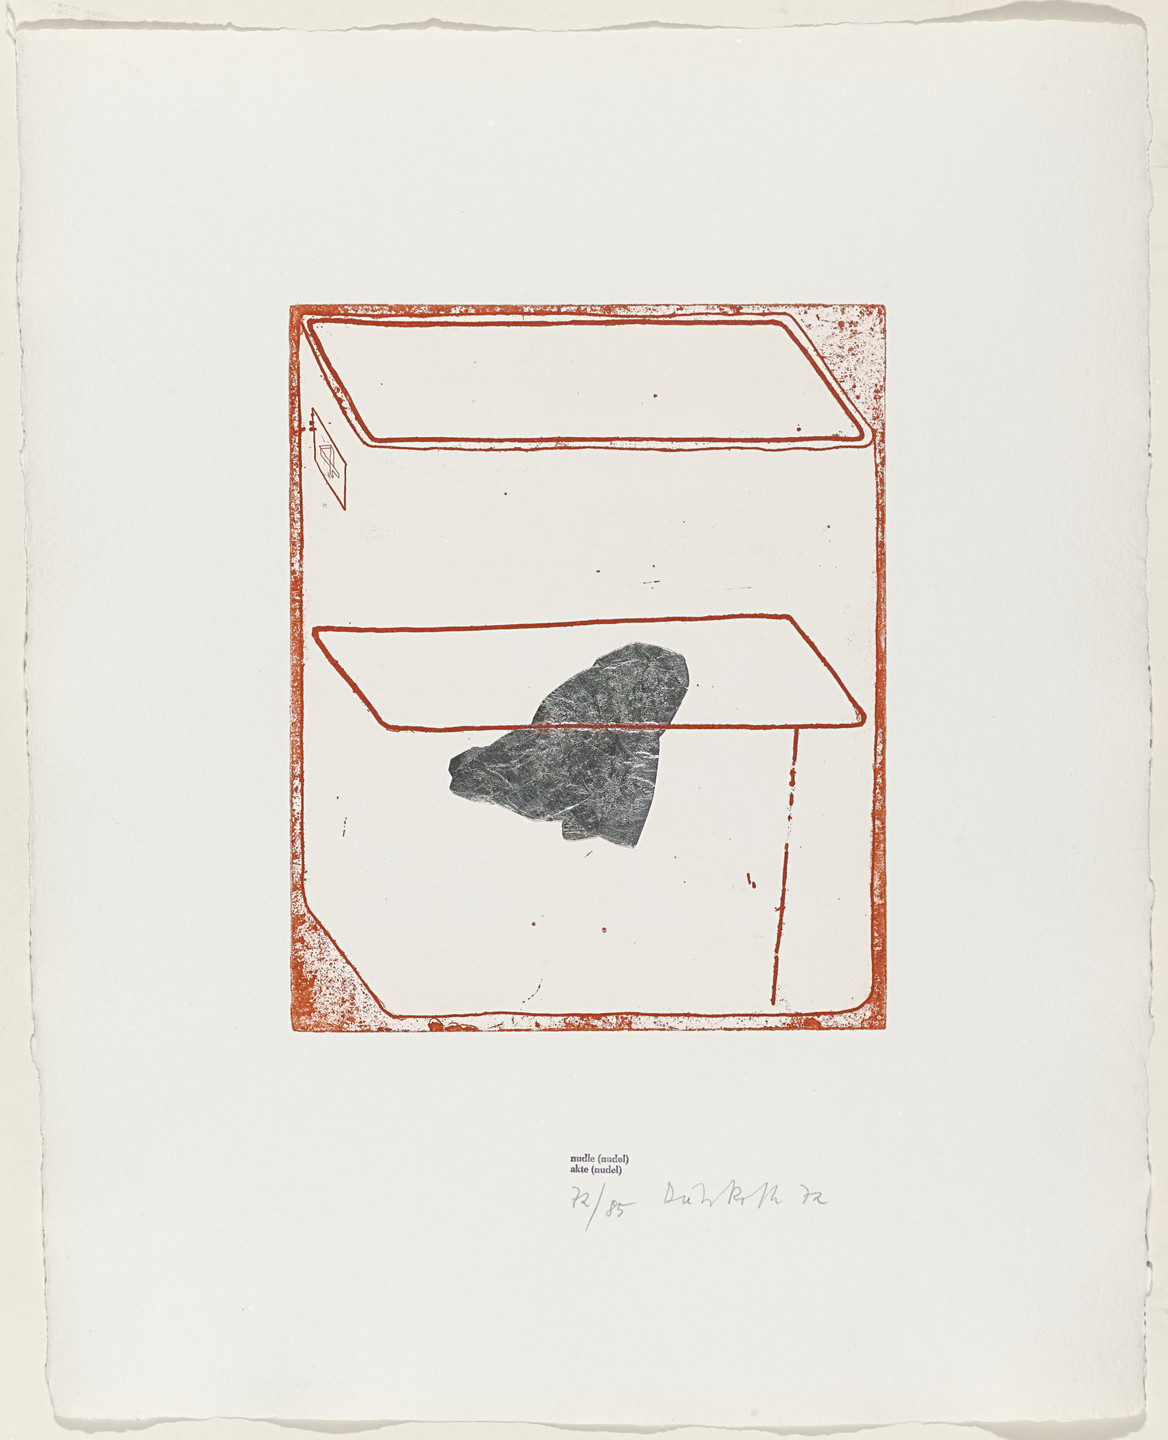 Dieter Roth. nudle (nudol) (akte [nudel]) from Containers. 1972, published 1973